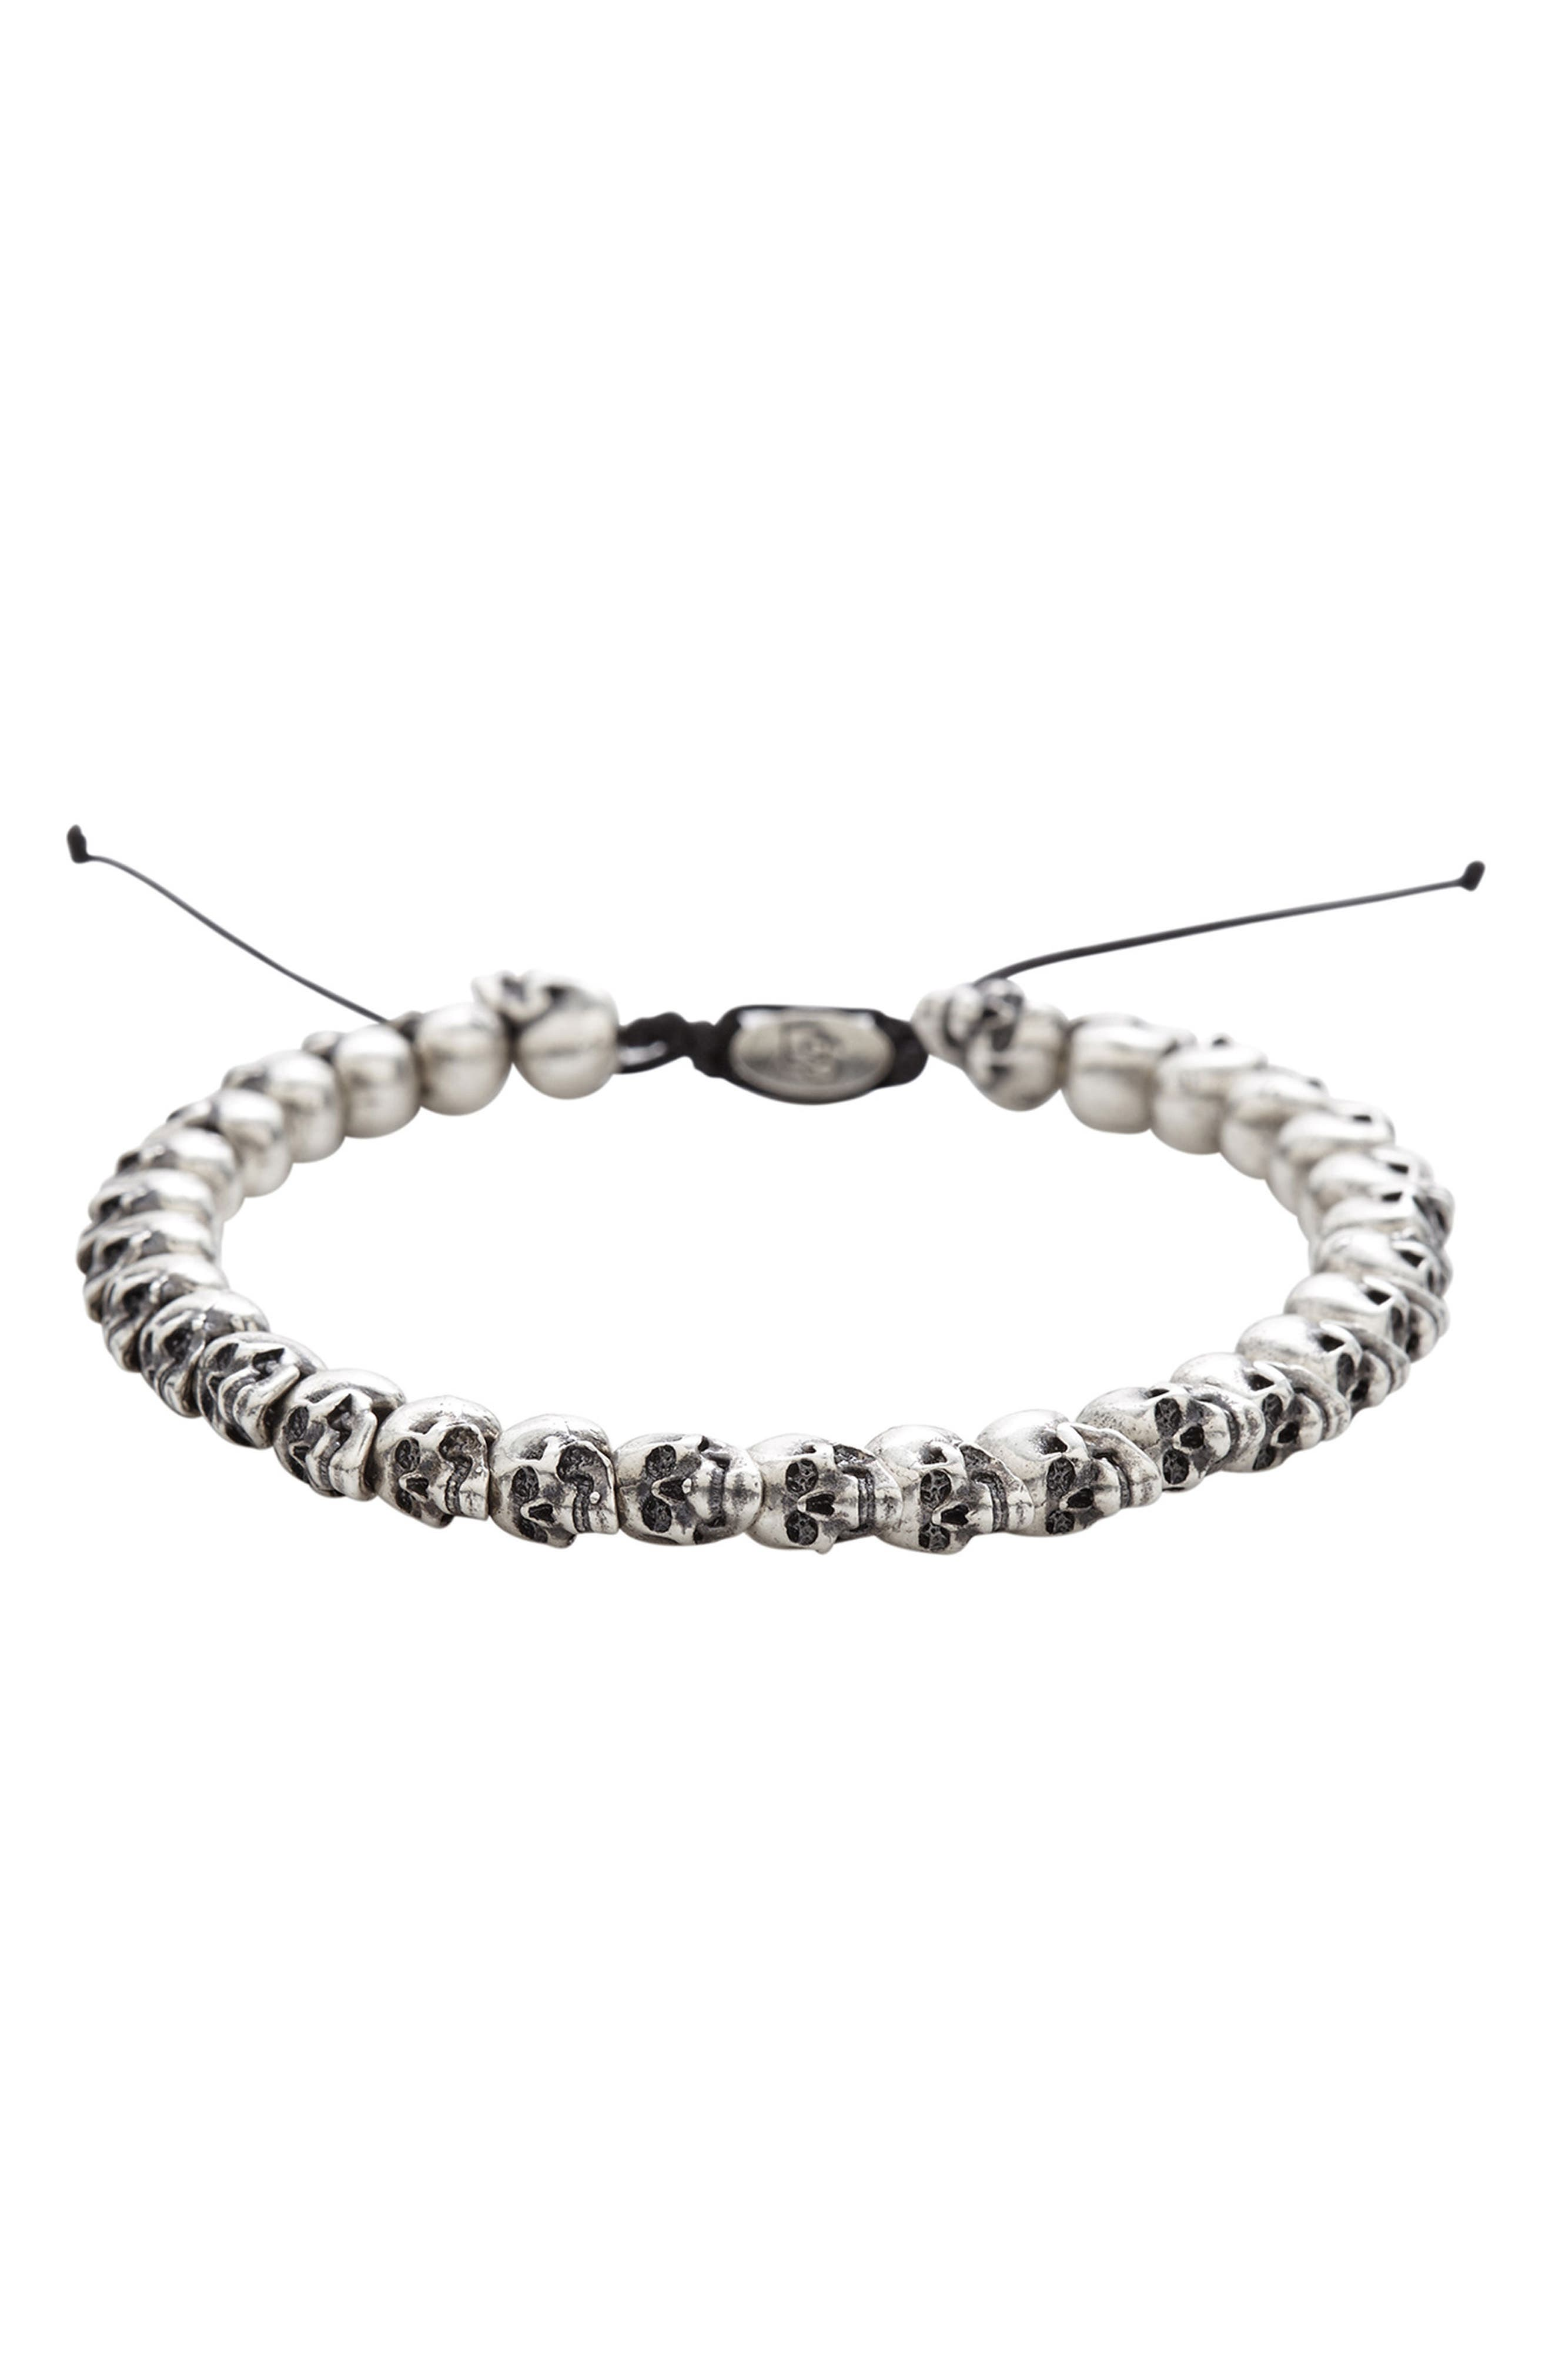 Skull Bead Bracelet,                             Main thumbnail 1, color,                             Silver